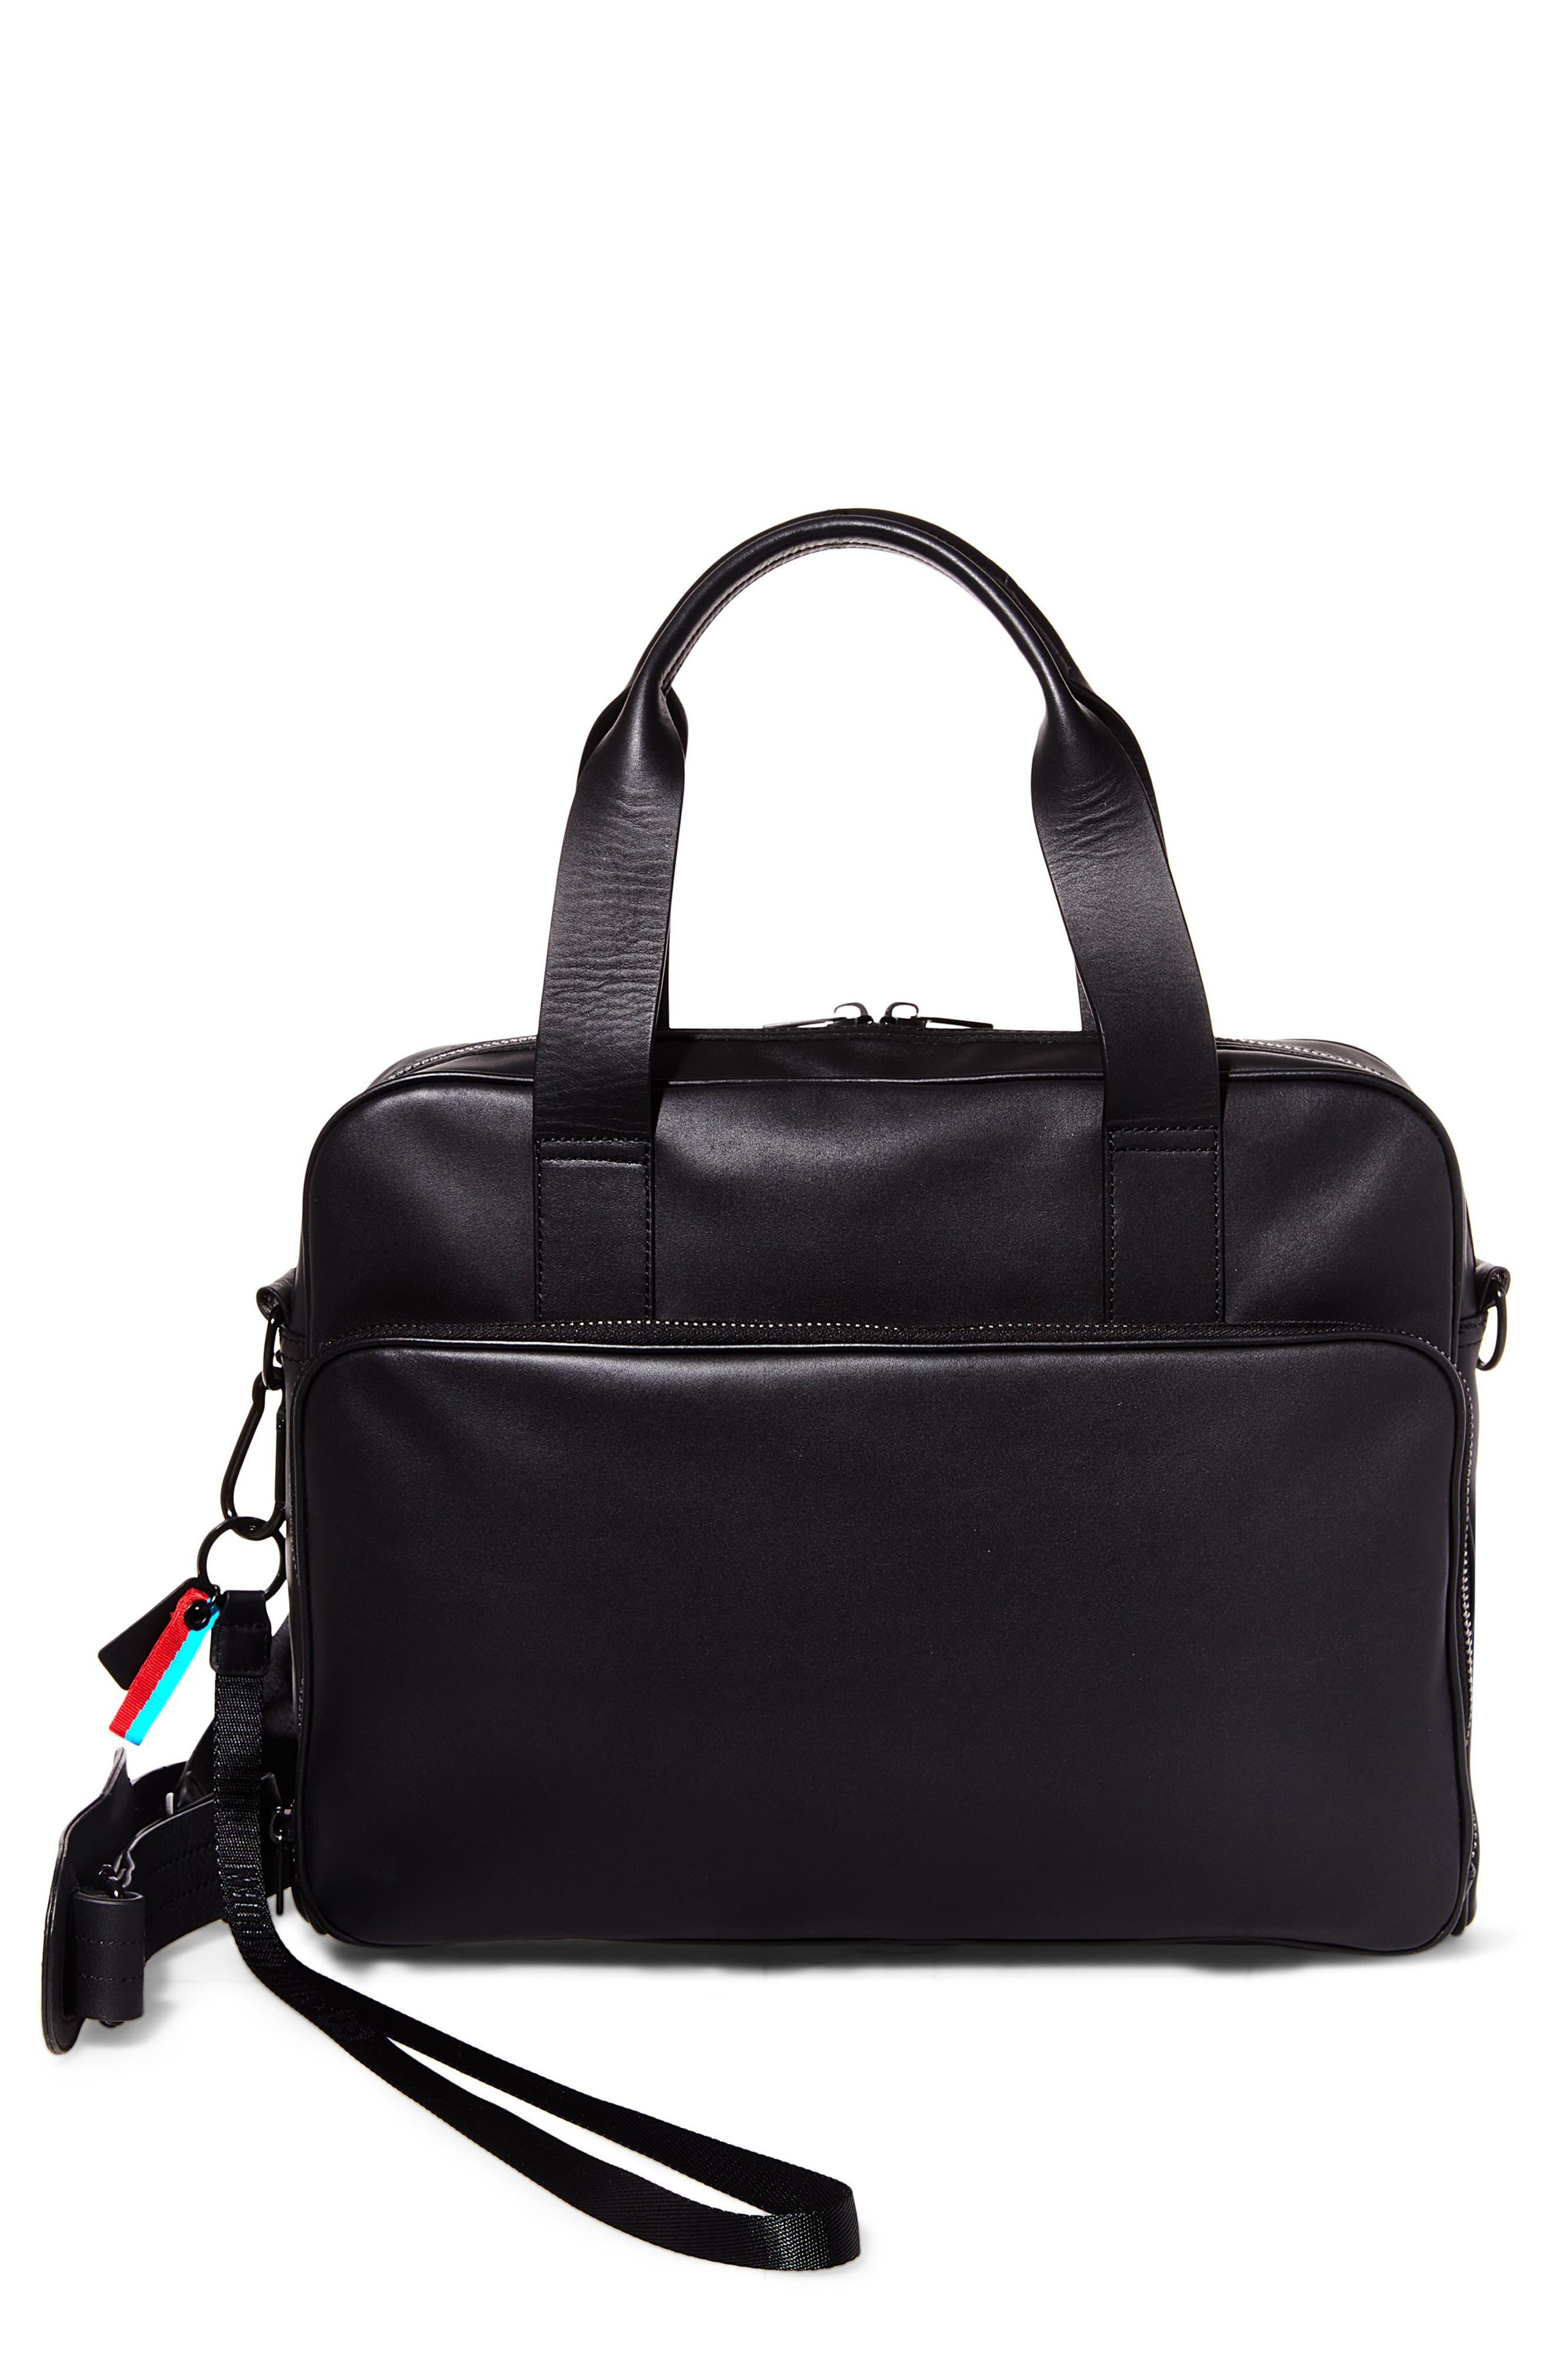 GQ x Steve Madden Leather Computer Bag,                             Main thumbnail 1, color,                             001